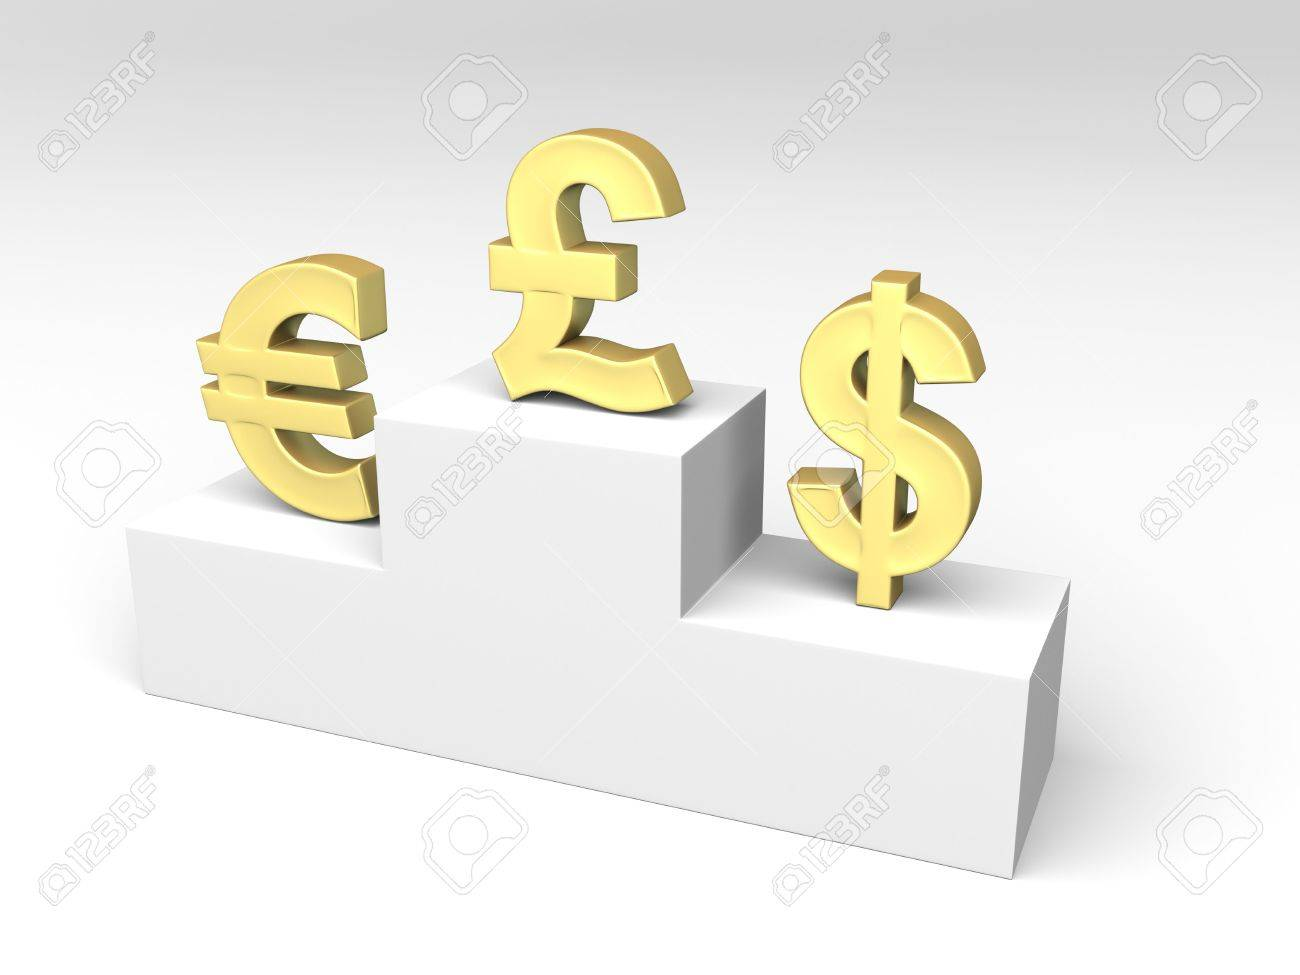 Currencies exchange rates shown by some currency symbols standing currencies exchange rates shown by some currency symbols standing on a podium stock photo 3224111 biocorpaavc